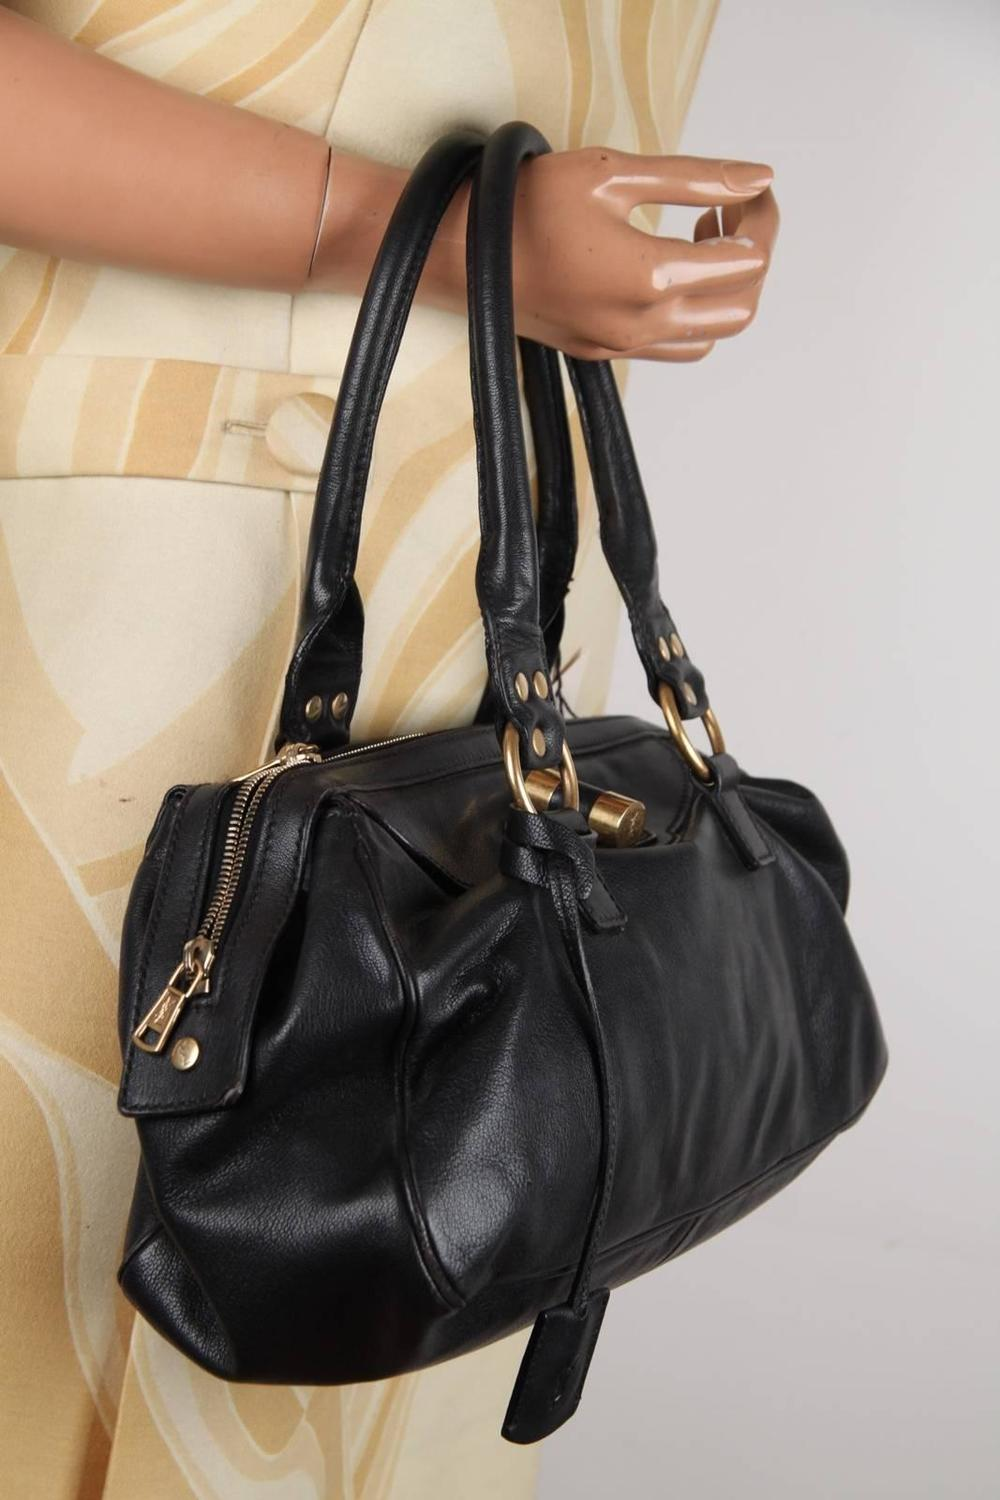 YVES SAINT LAURENT Black Leather MUSE Soft Doctor Bag TOTE Bowler ...